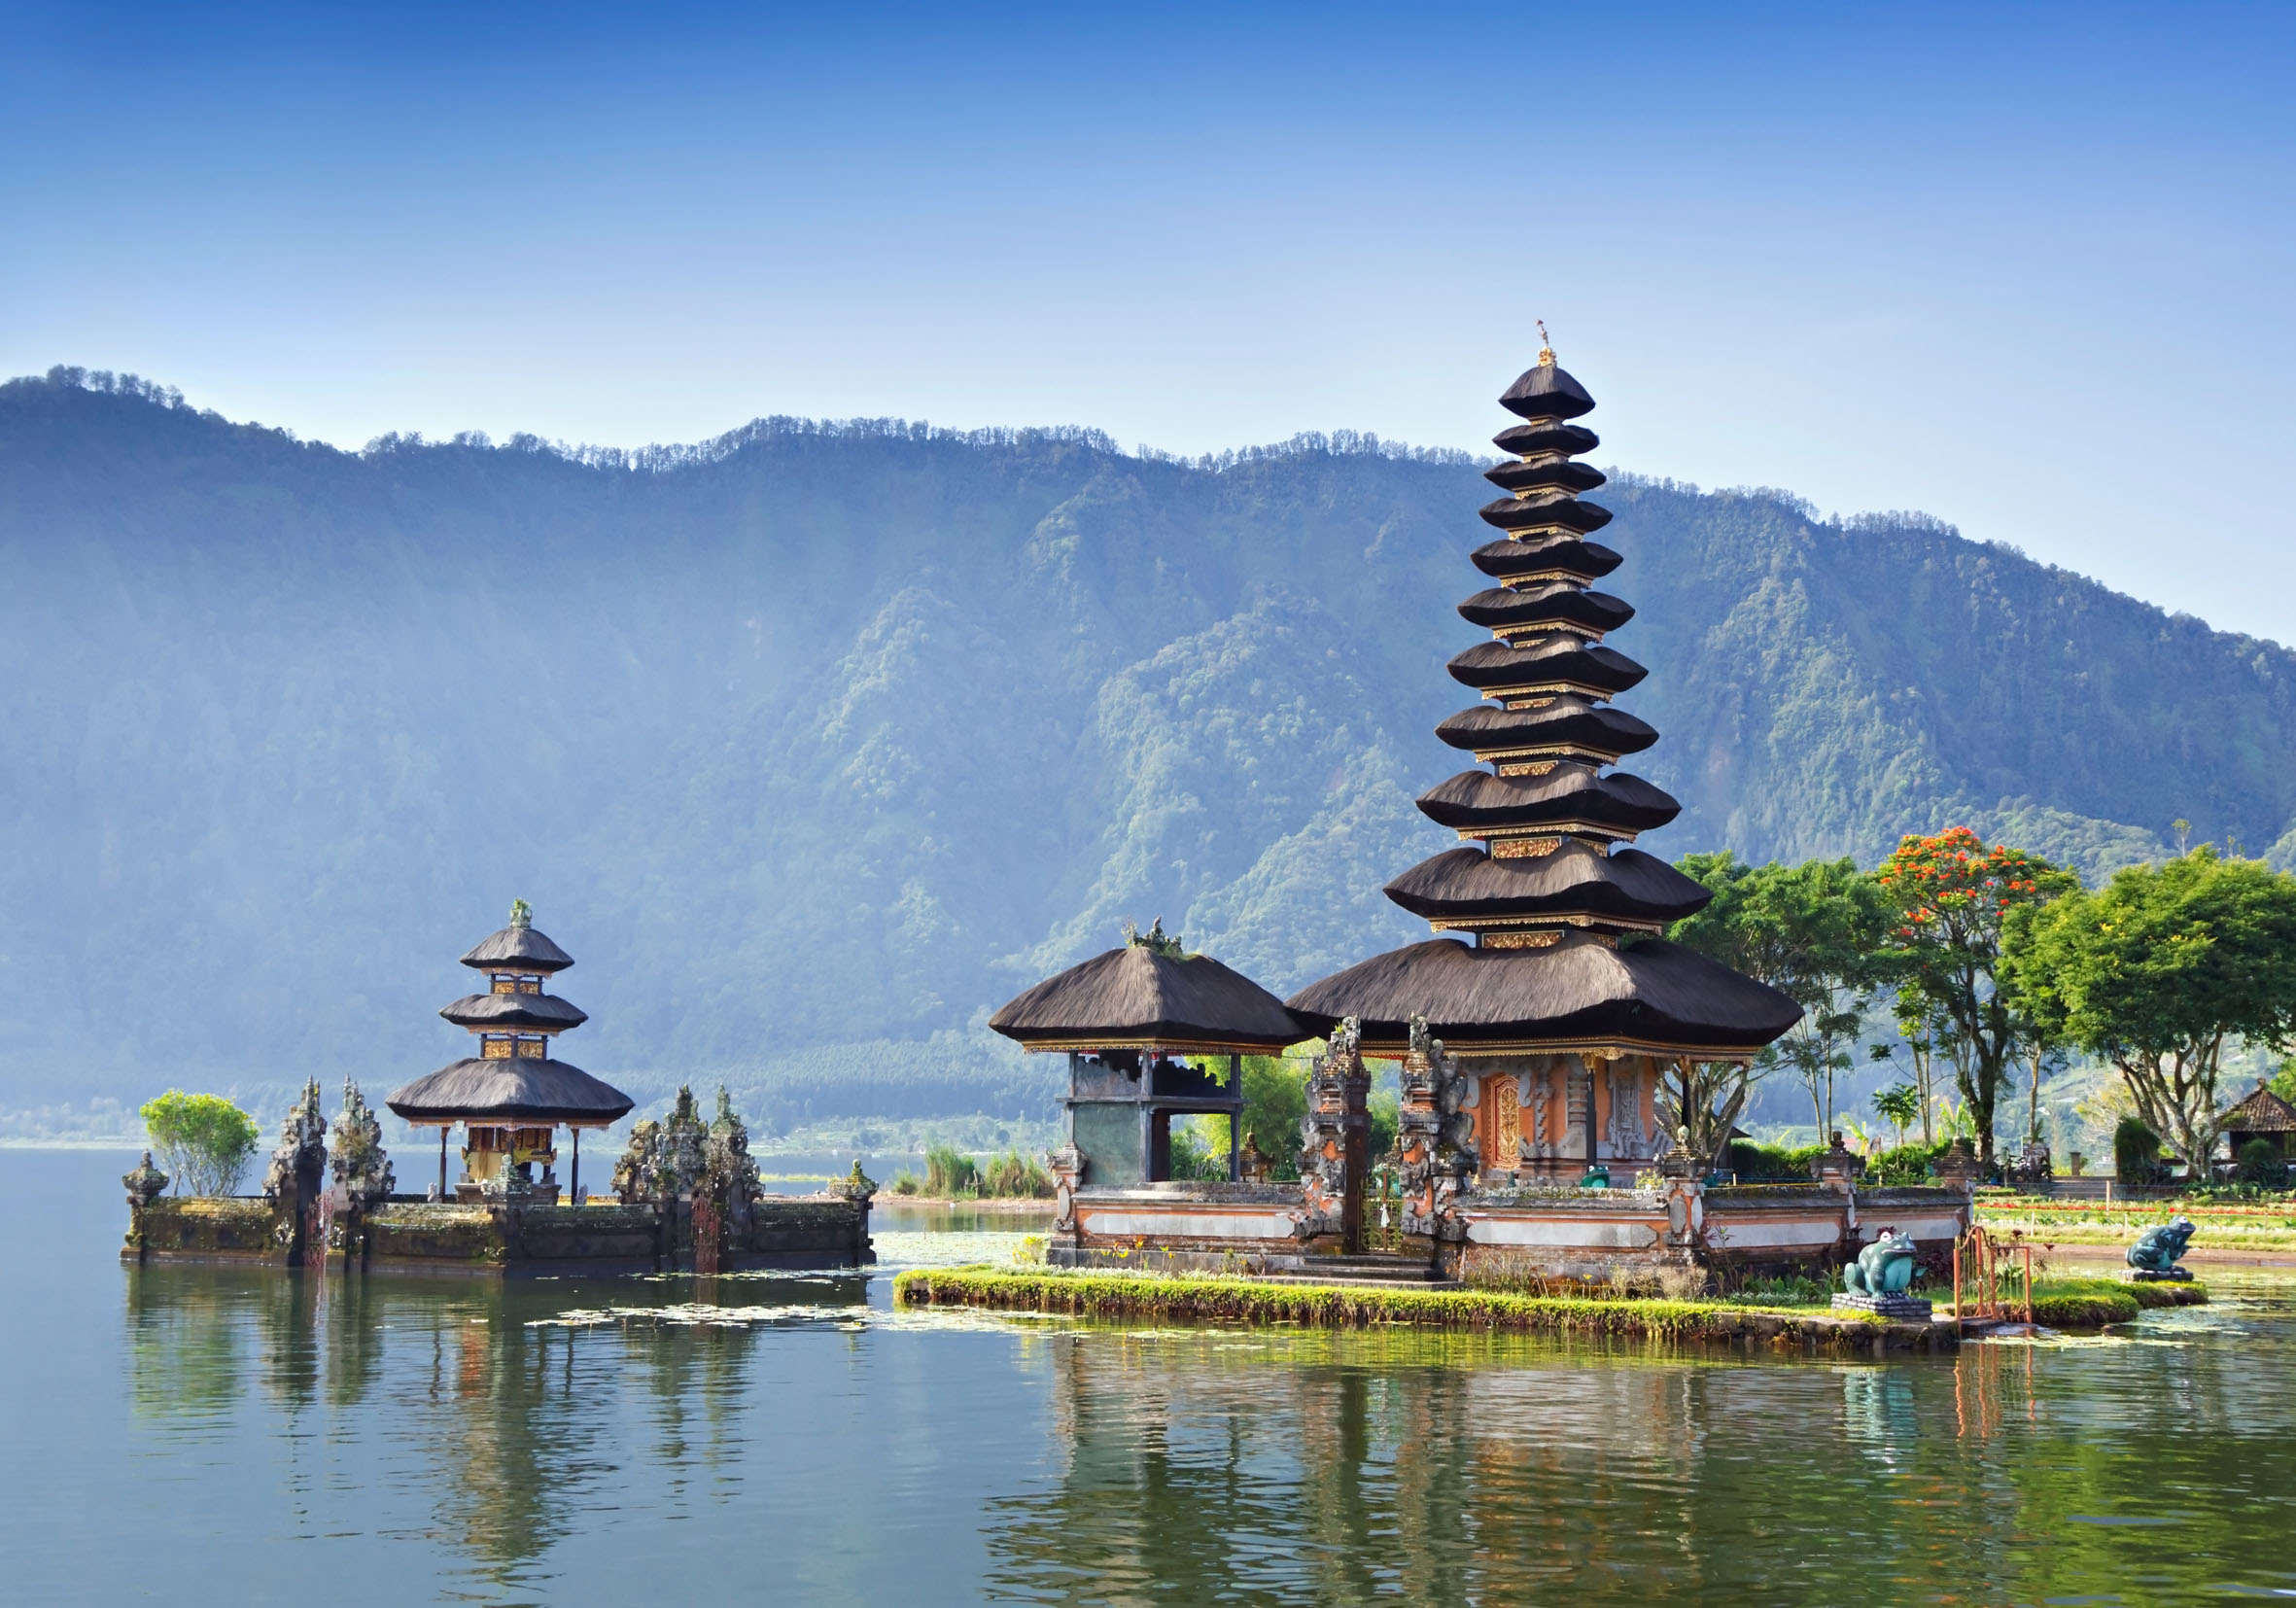 What to bring home on a trip to Bali